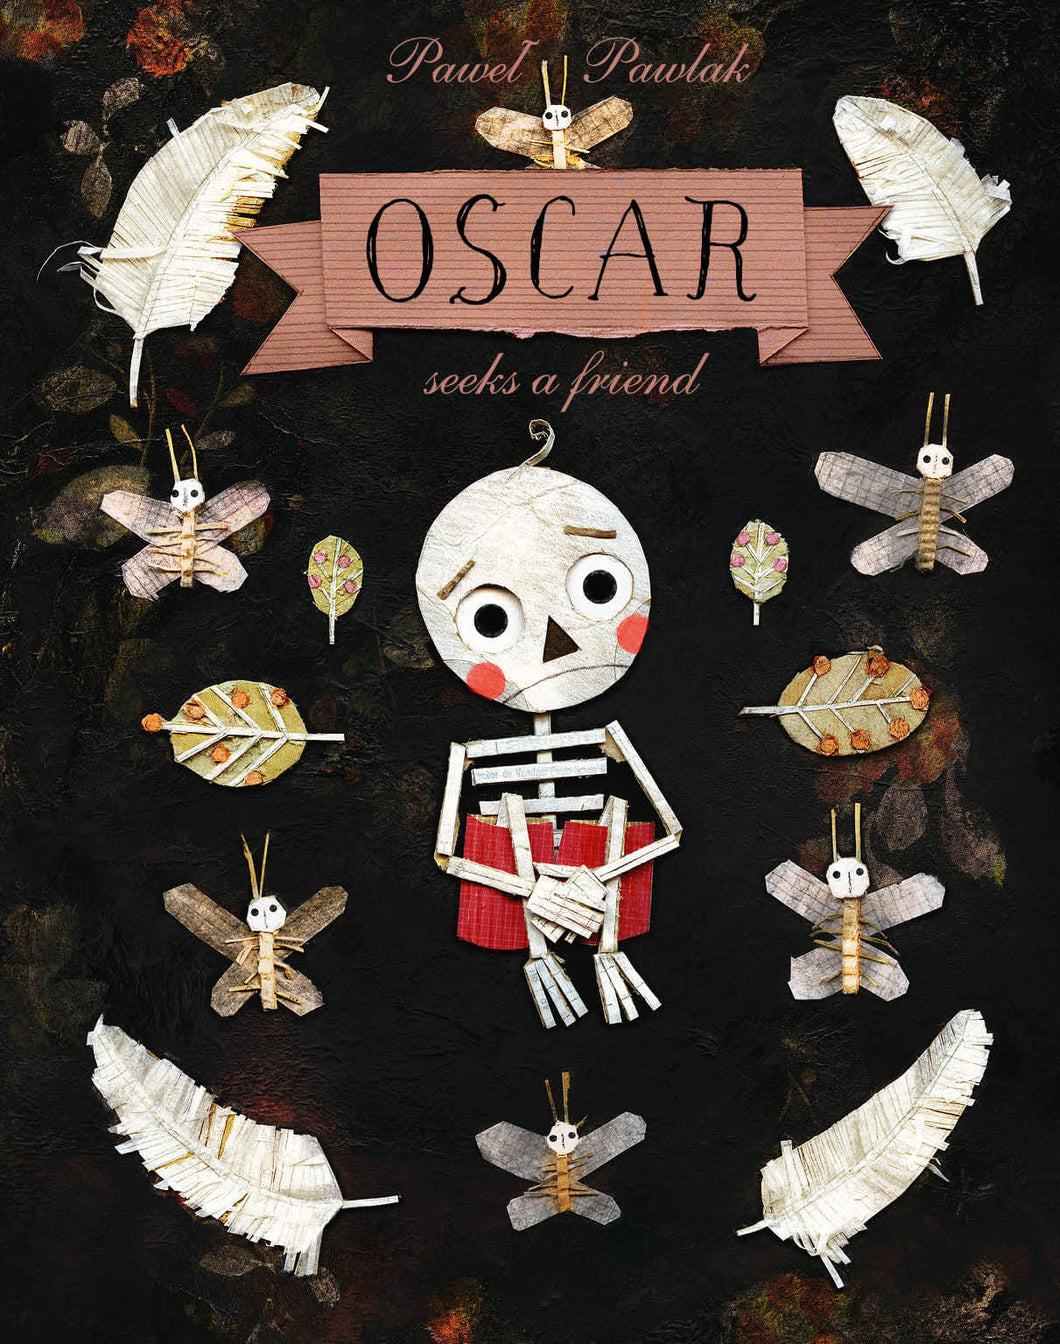 Oscar seeks a friend - Lantana Publishing